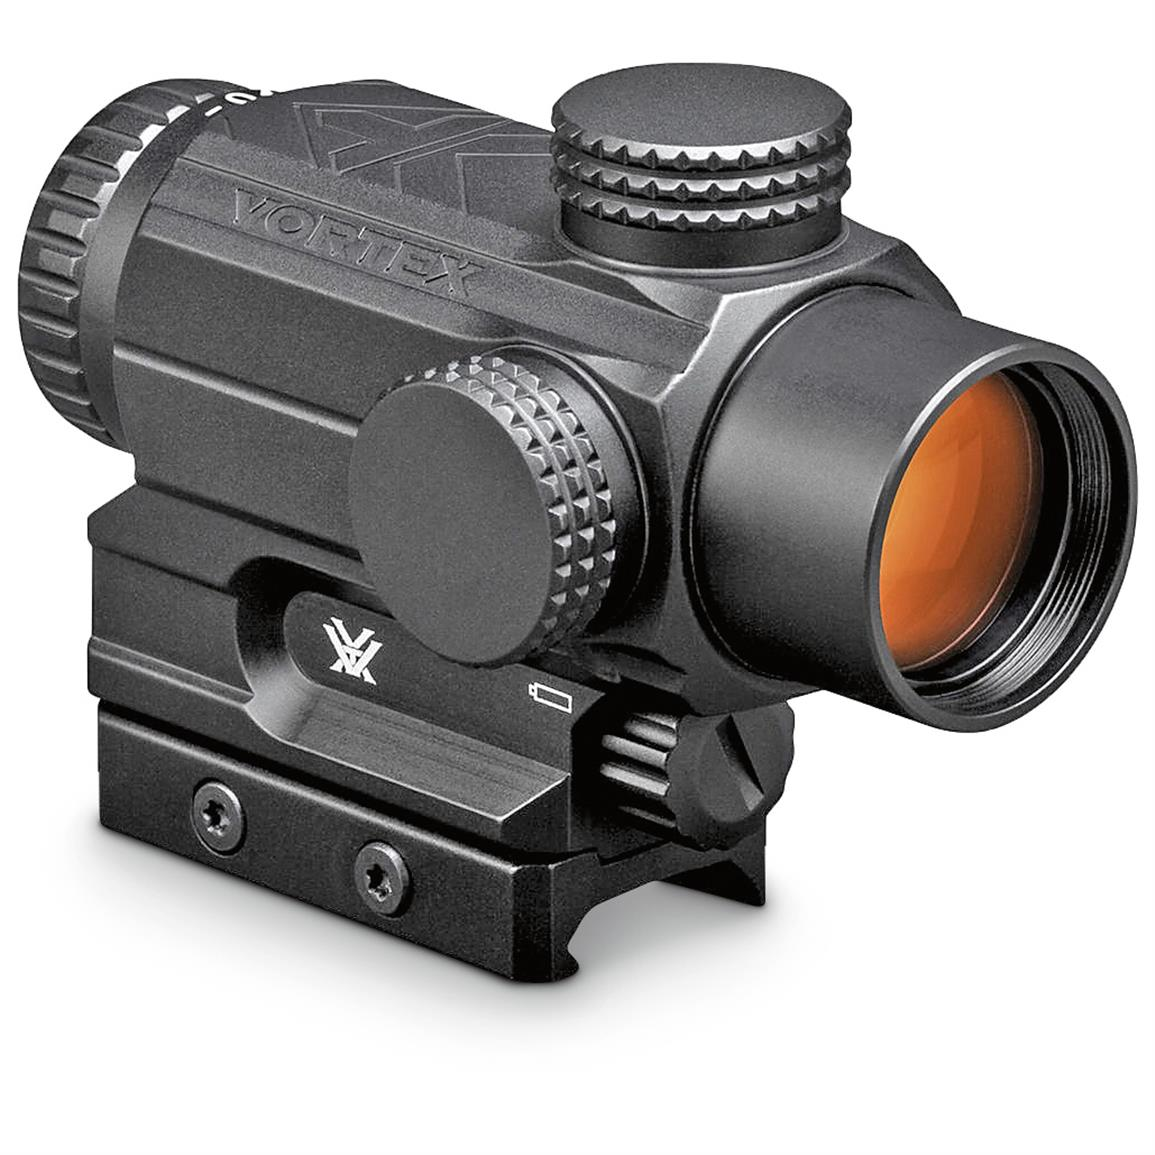 Vortex Spitfire Prism 1X Rifle Scope